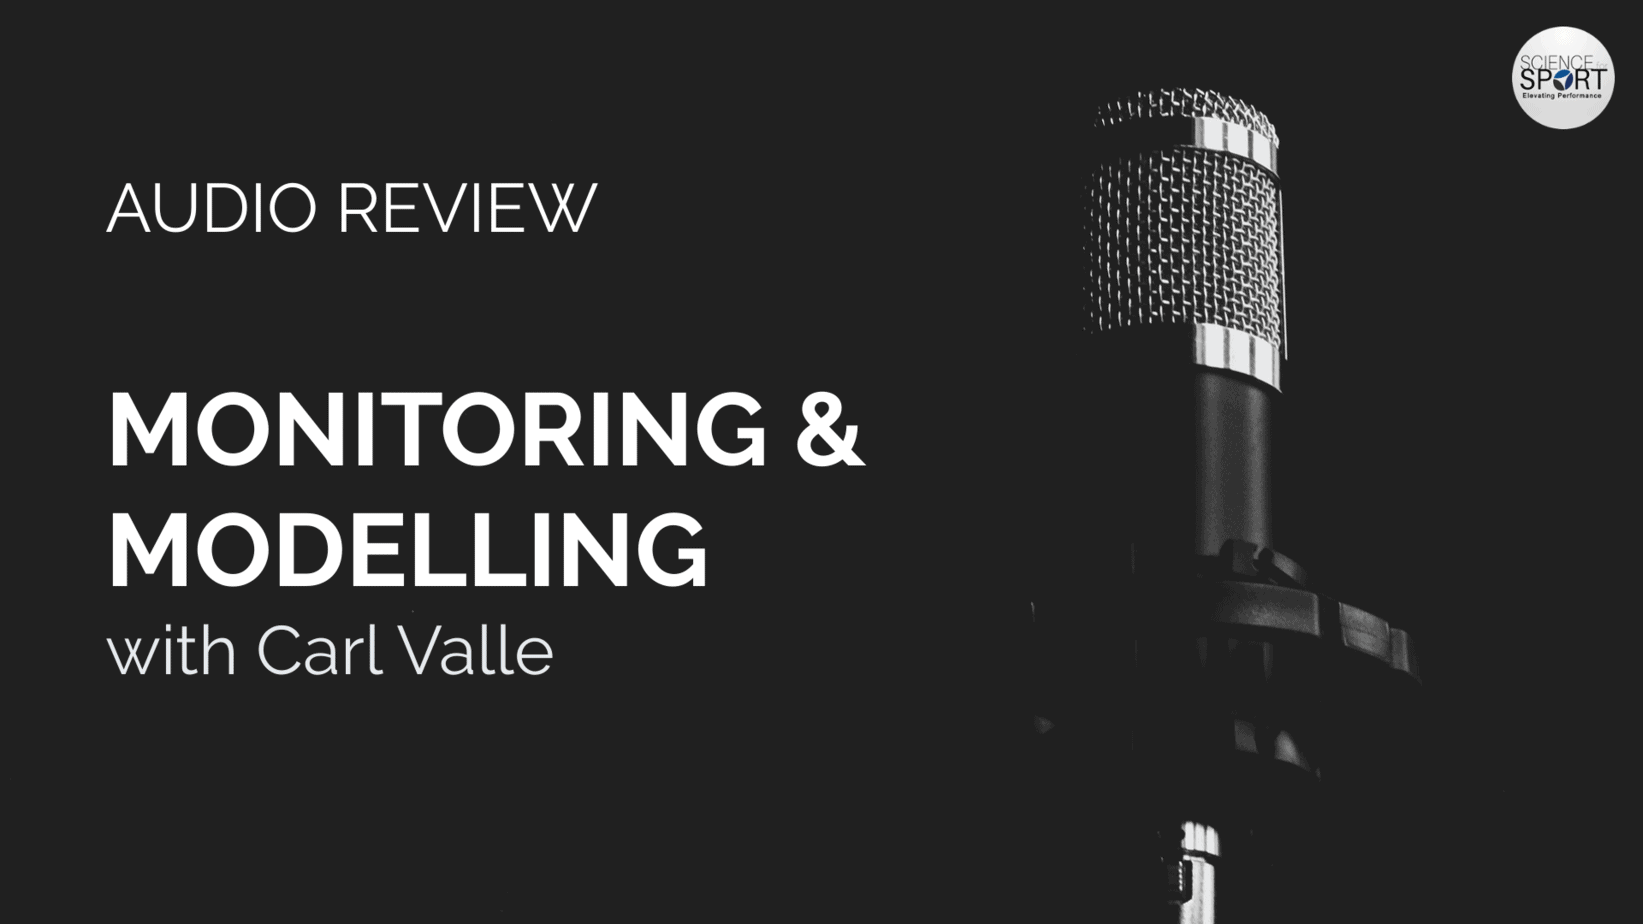 Monitoring & Modelling with Carl Valle - Audio Review - Episode #13